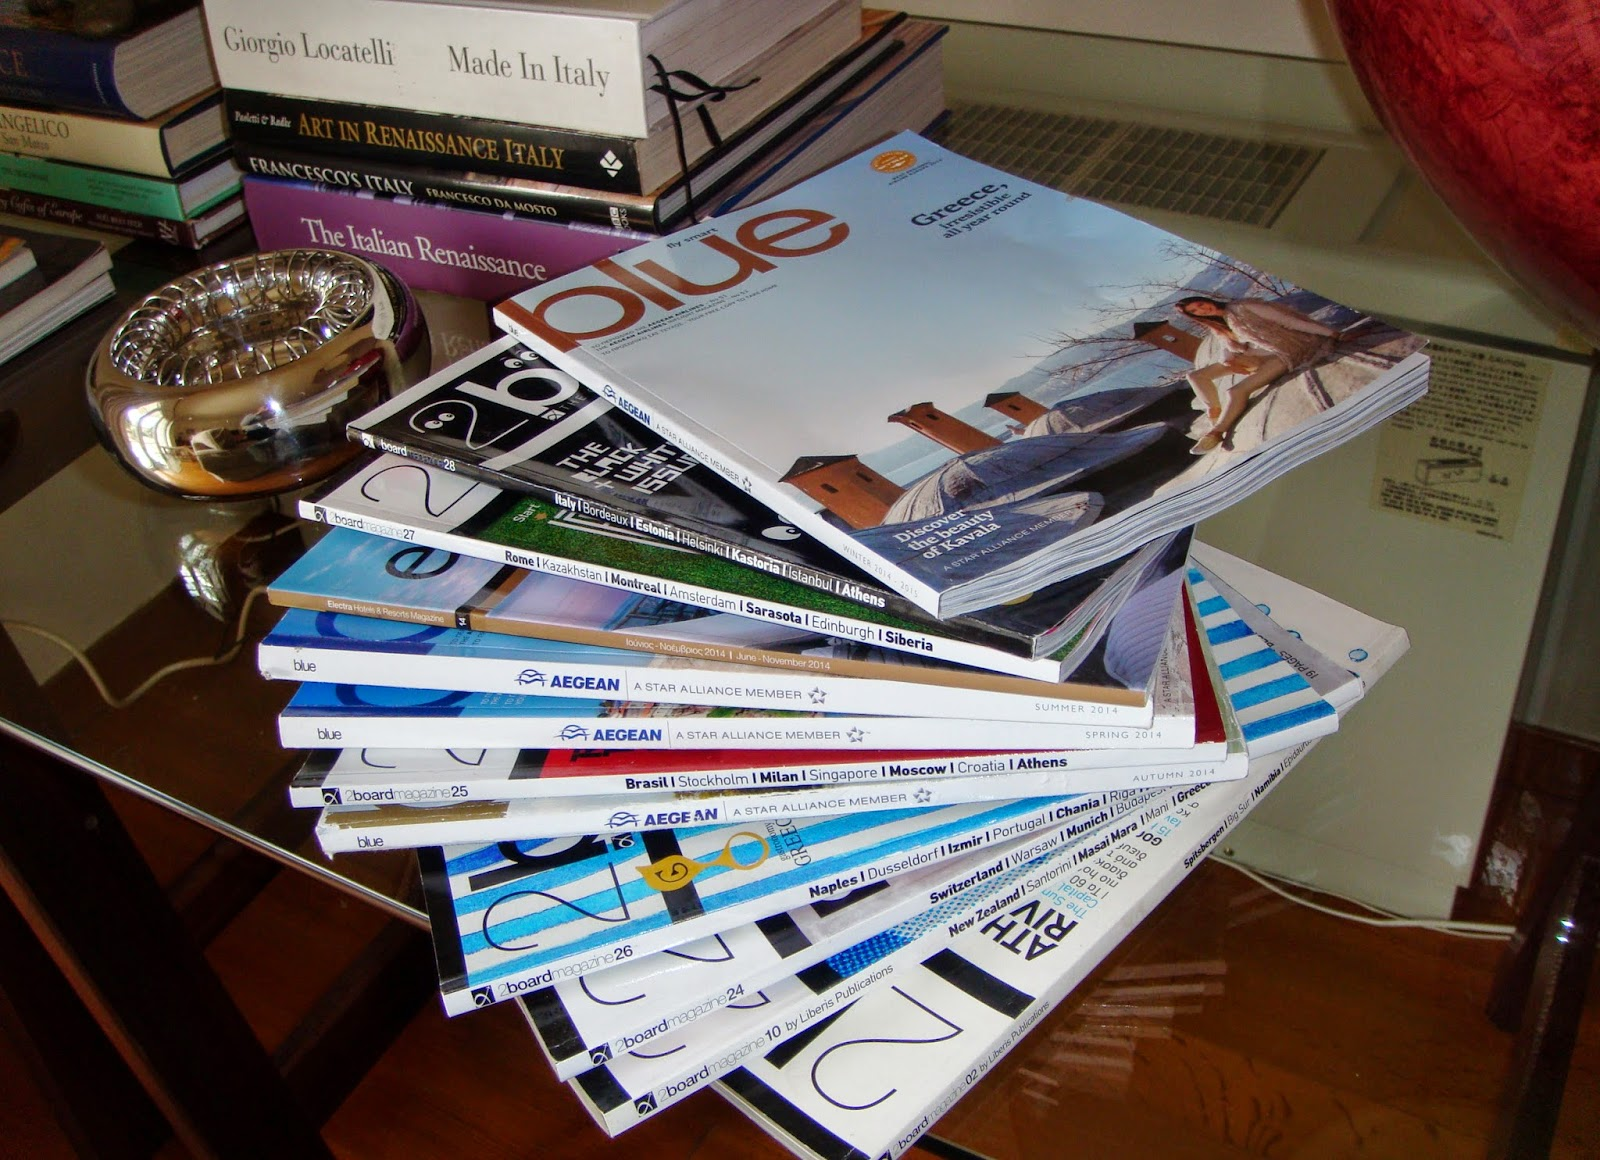 AthensAirport and Aegean Arline magazines